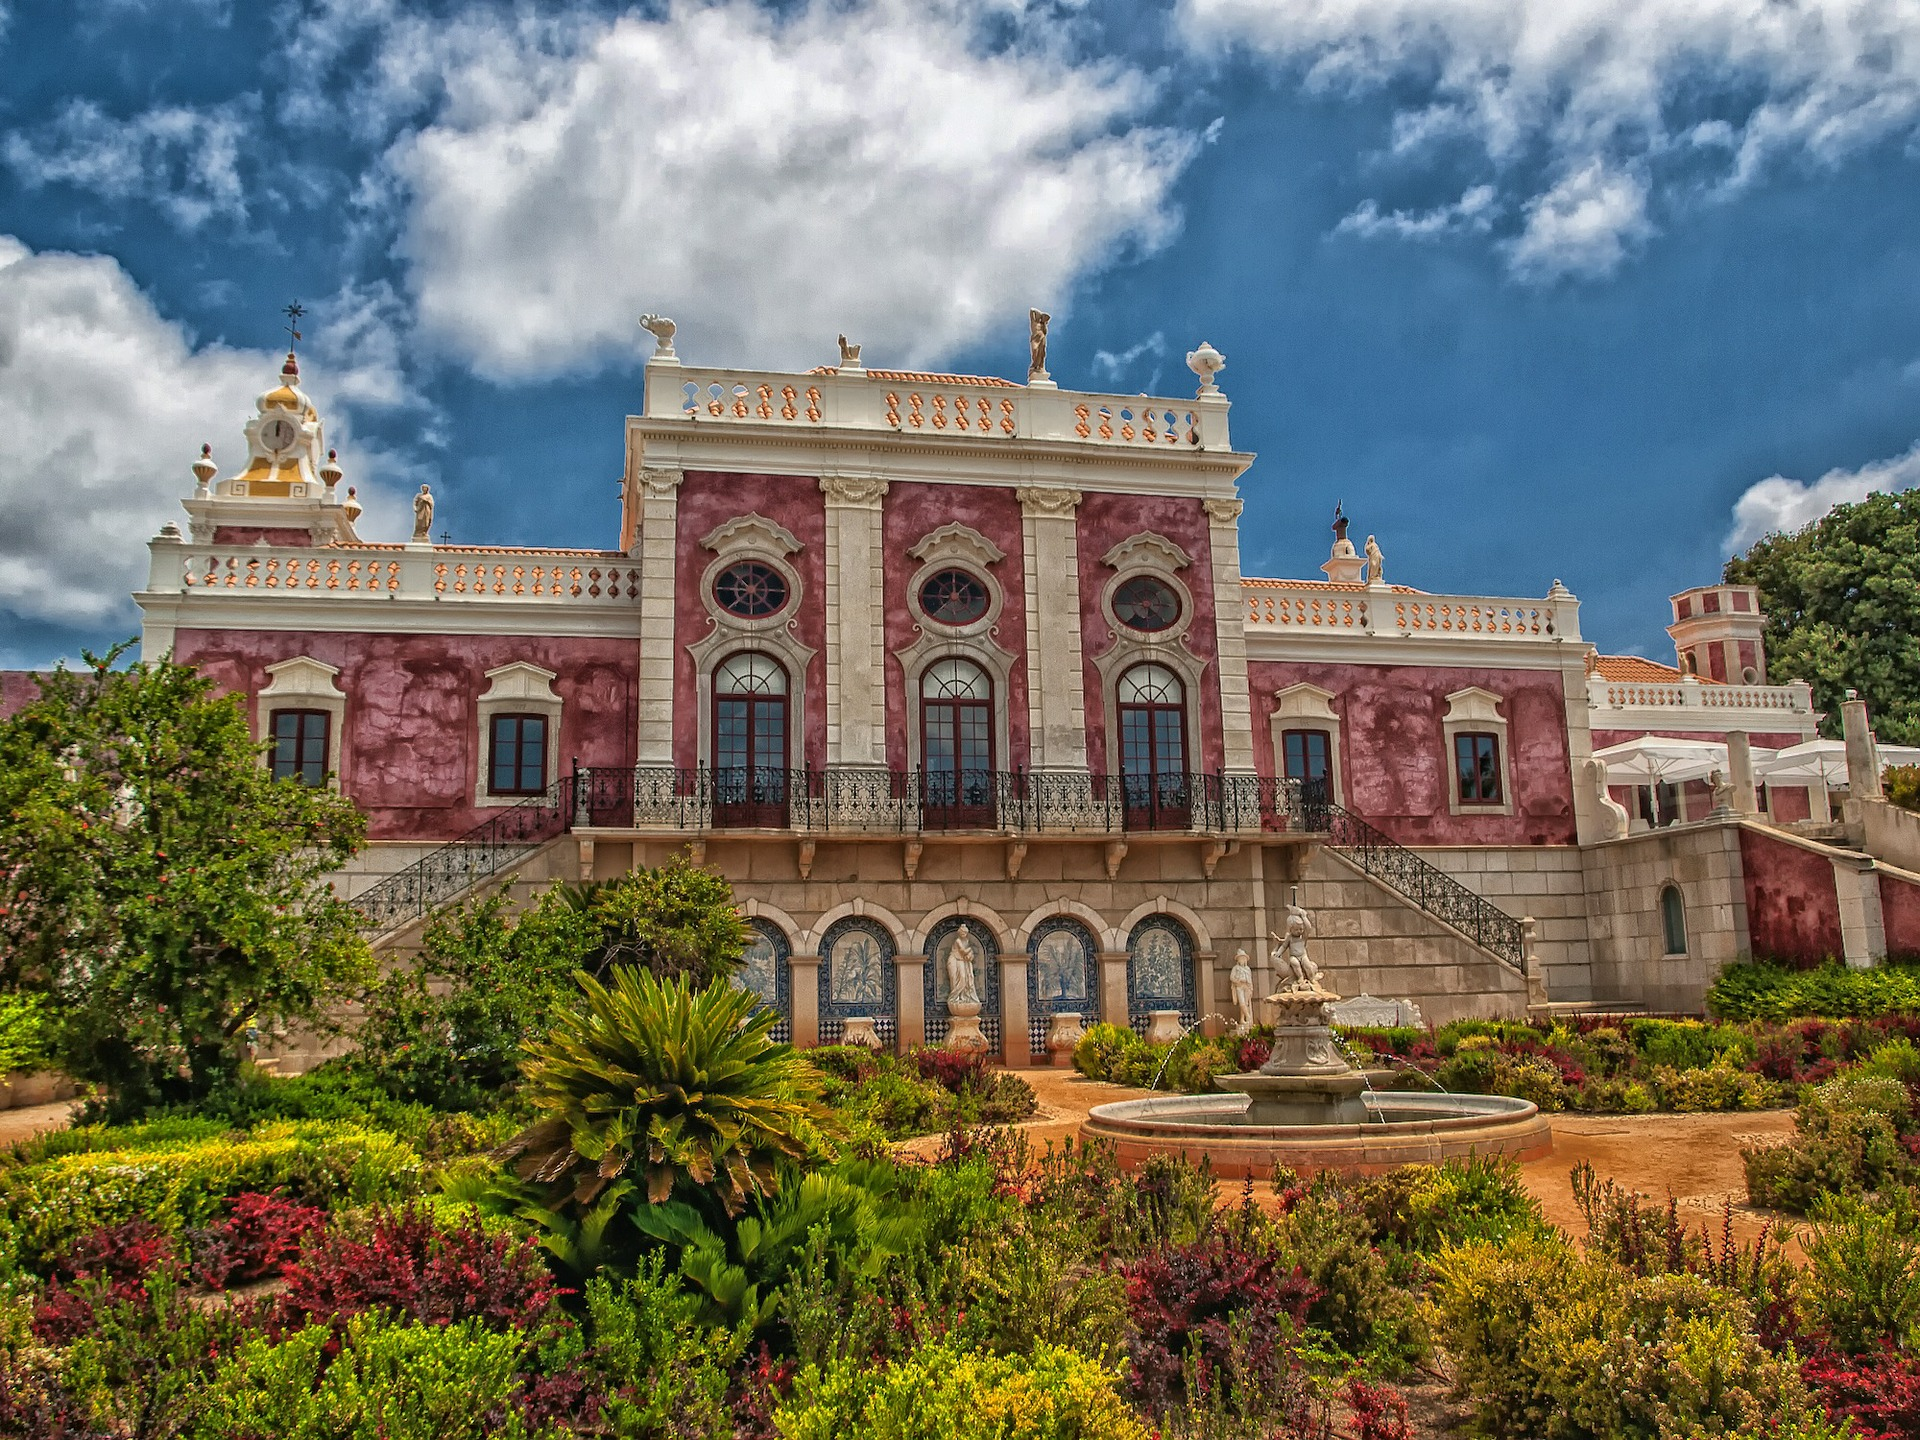 palace-of-estoi-373974_1920.jpg